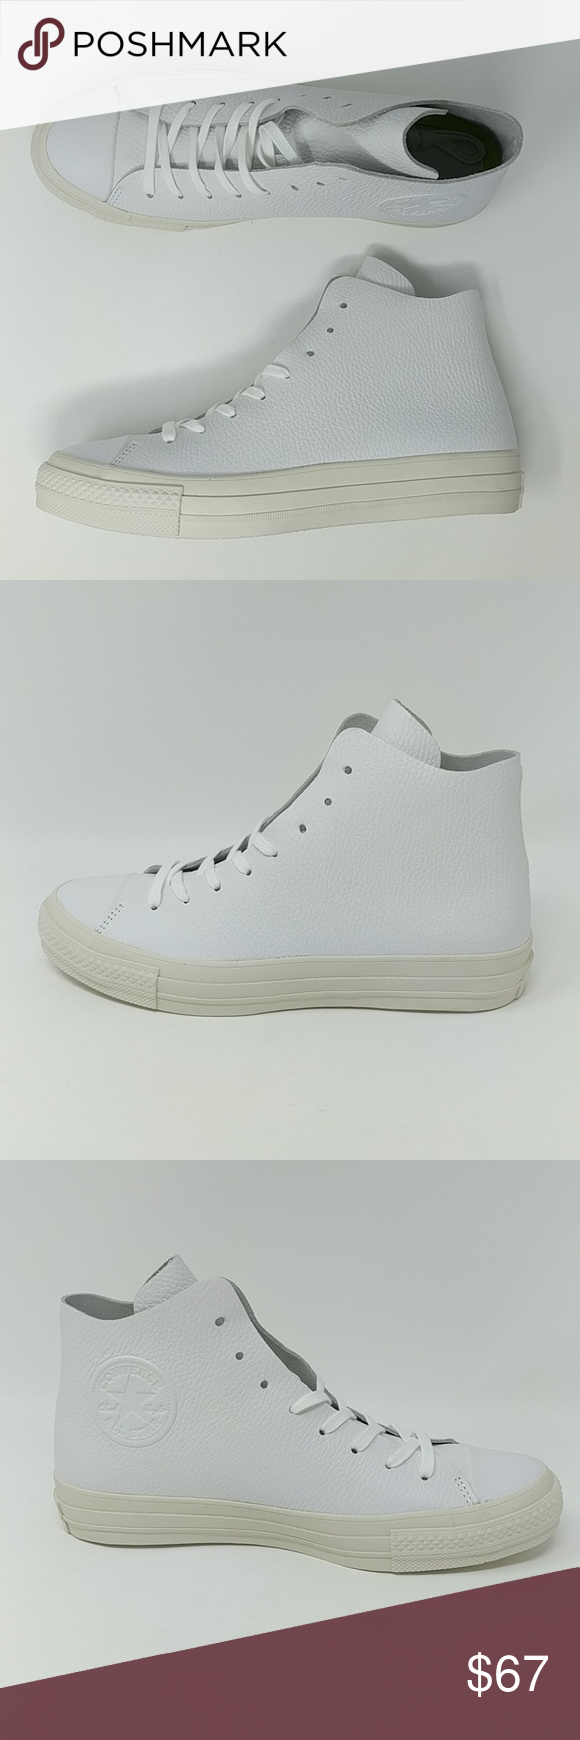 f08ef62f9ea4 Converse Chuck Taylor All Star CTAS Prime High New with box. Men s size 7